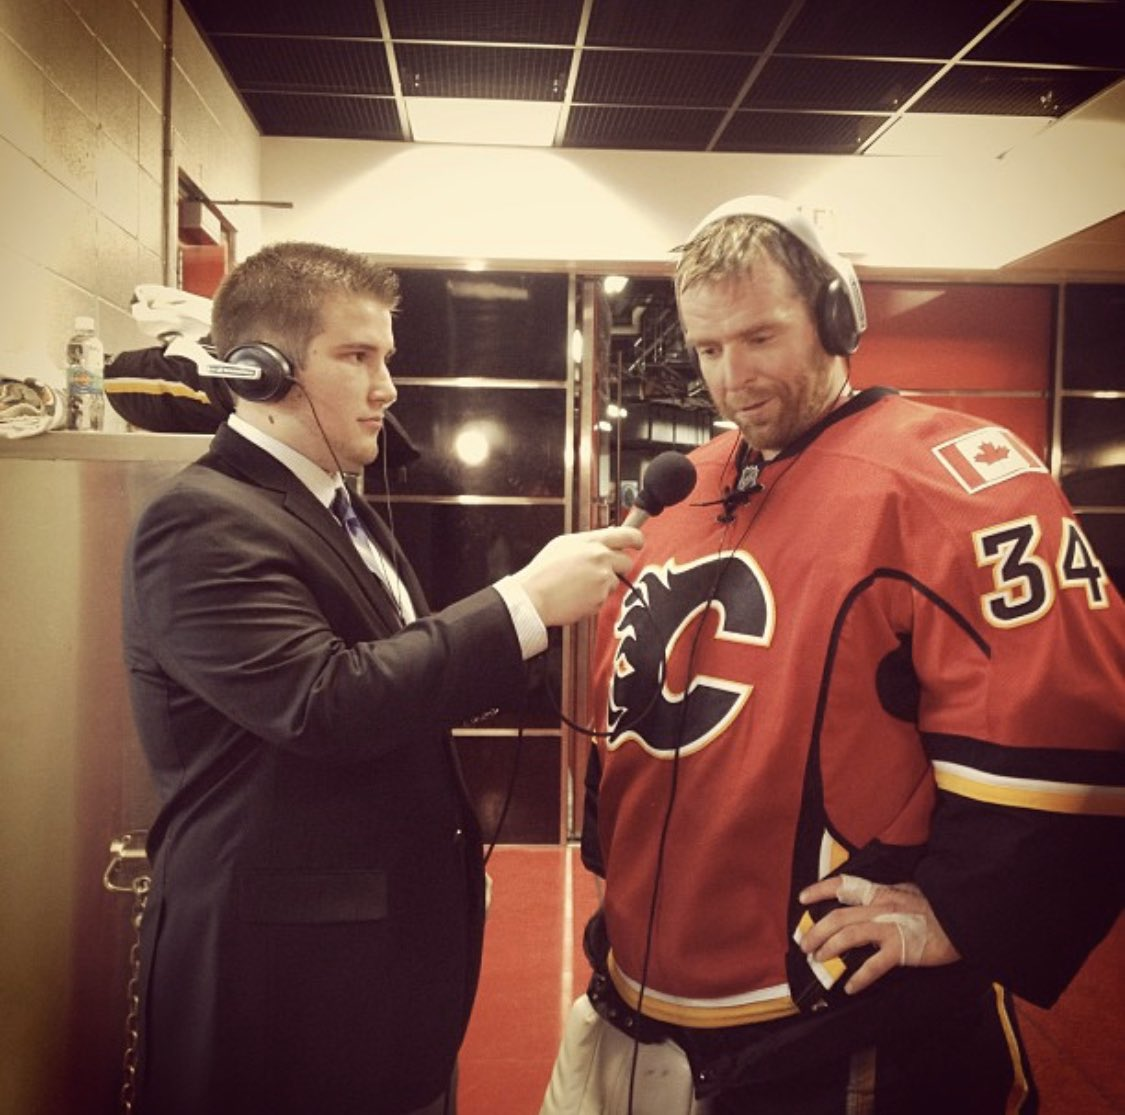 """I also don't have a booth shot, but, I will use this one as it is special to me.  Very first year that I started to do some work and cover the #Flames. Special to be with Kipper back in 2013.   One of the first """"wow, my job could be worse!"""" moments of my career. Thx @CSECRKerr ! https://twitter.com/csecrkerr/status/1245488696616349696…pic.twitter.com/066RLeSkmj"""